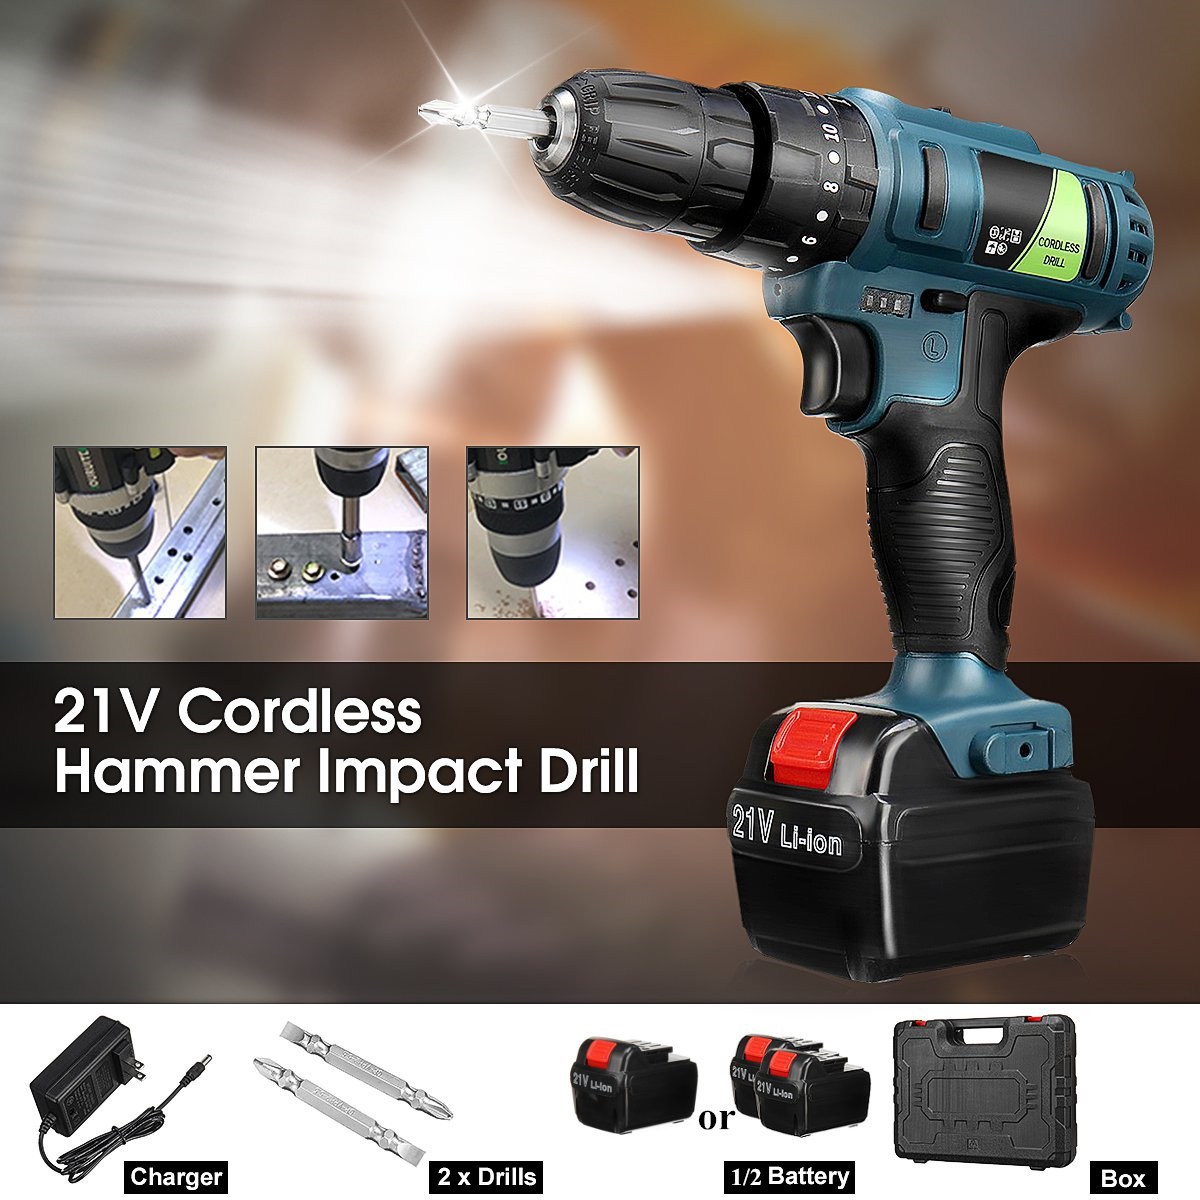 21V Double Speed Impact Drill Electric Hammer Drill Battery Electric Cordless Drill Electric Screwdriver Home DIY Power Tools21V Double Speed Impact Drill Electric Hammer Drill Battery Electric Cordless Drill Electric Screwdriver Home DIY Power Tools